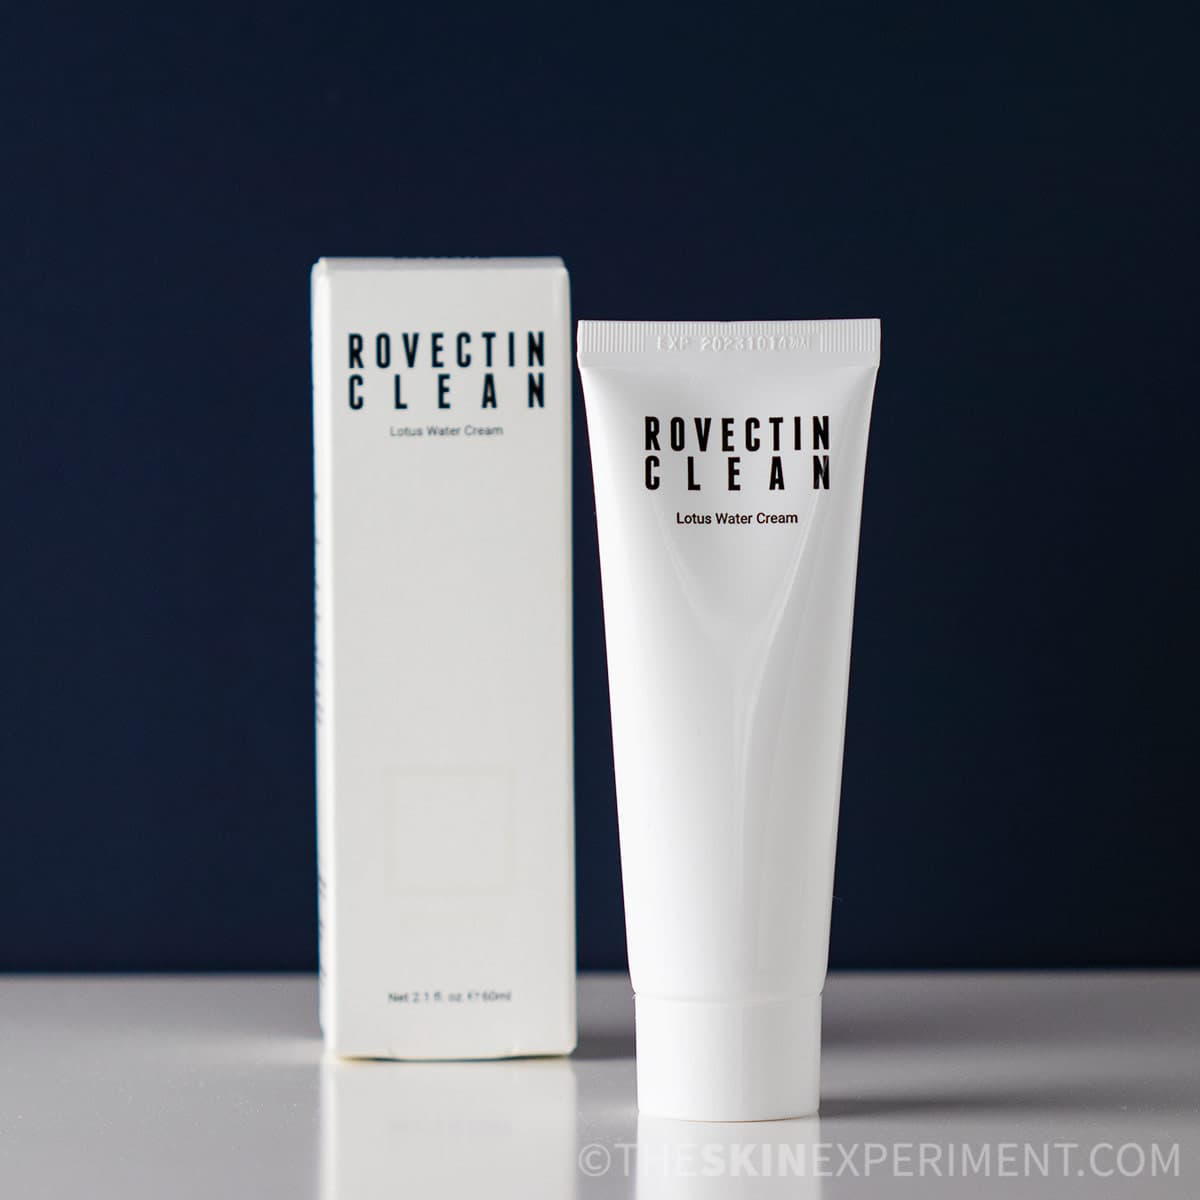 Rovectin Clean Lotus Water Cream Review